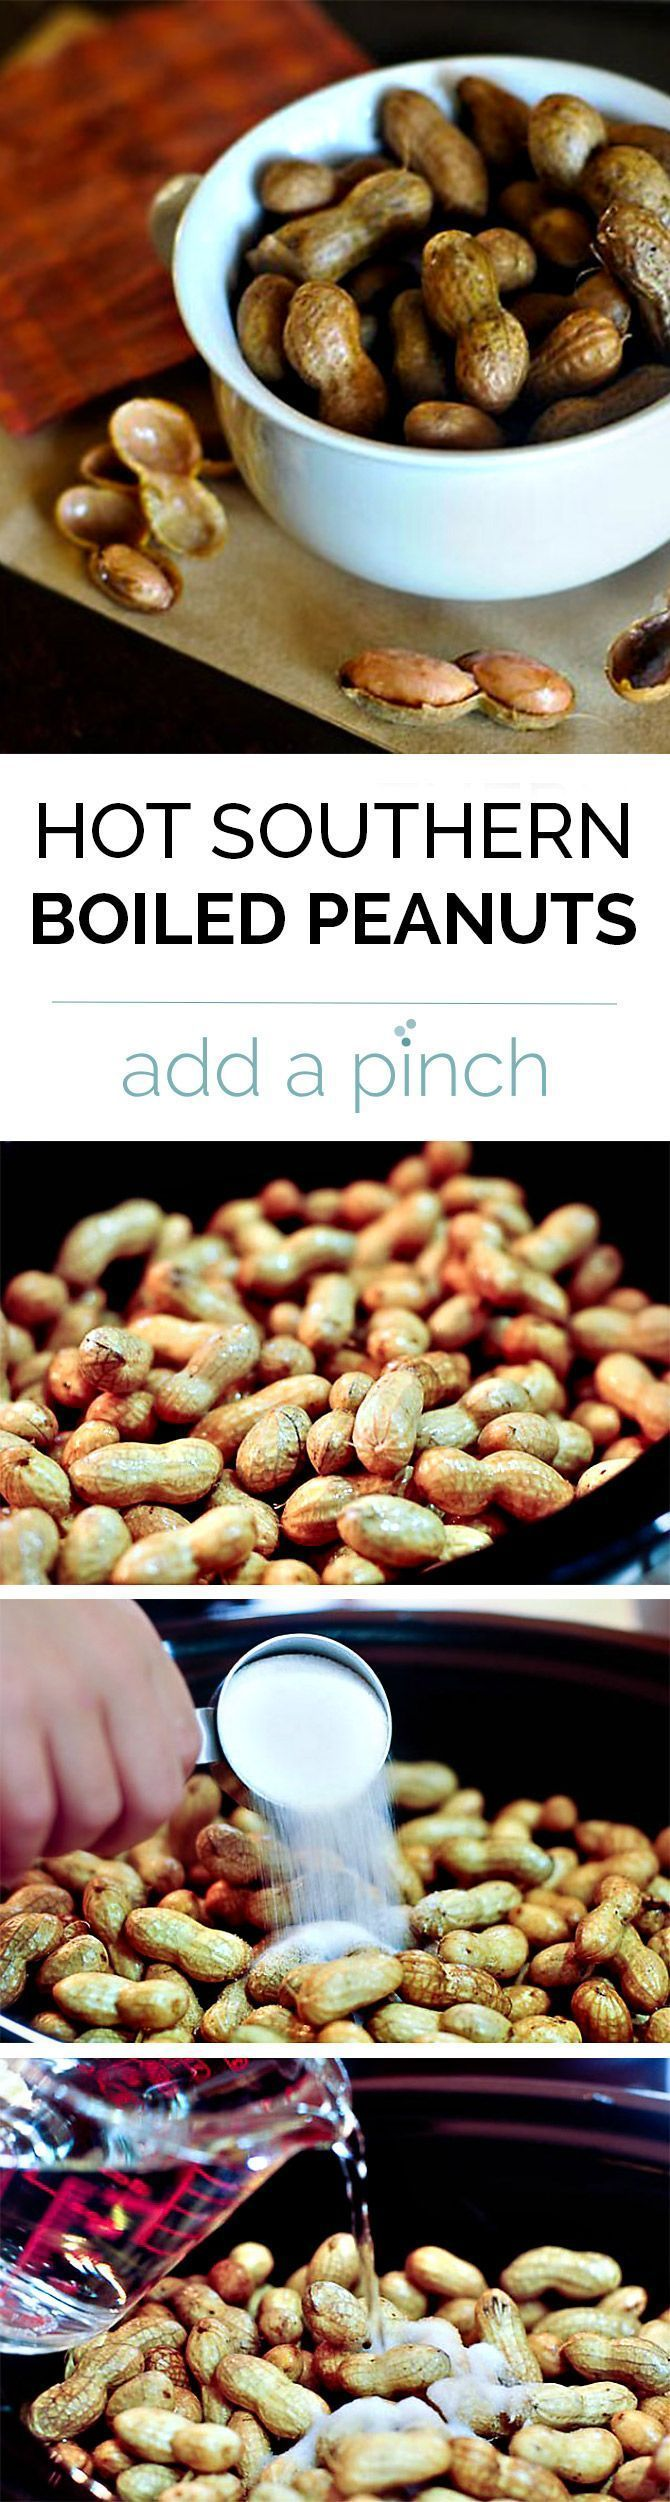 Hot Boiled Peanuts are a traditional Southern snack perfect for football games and fall drives! This easy version lets the slow cooker do all the hard work!  // addapinch.com